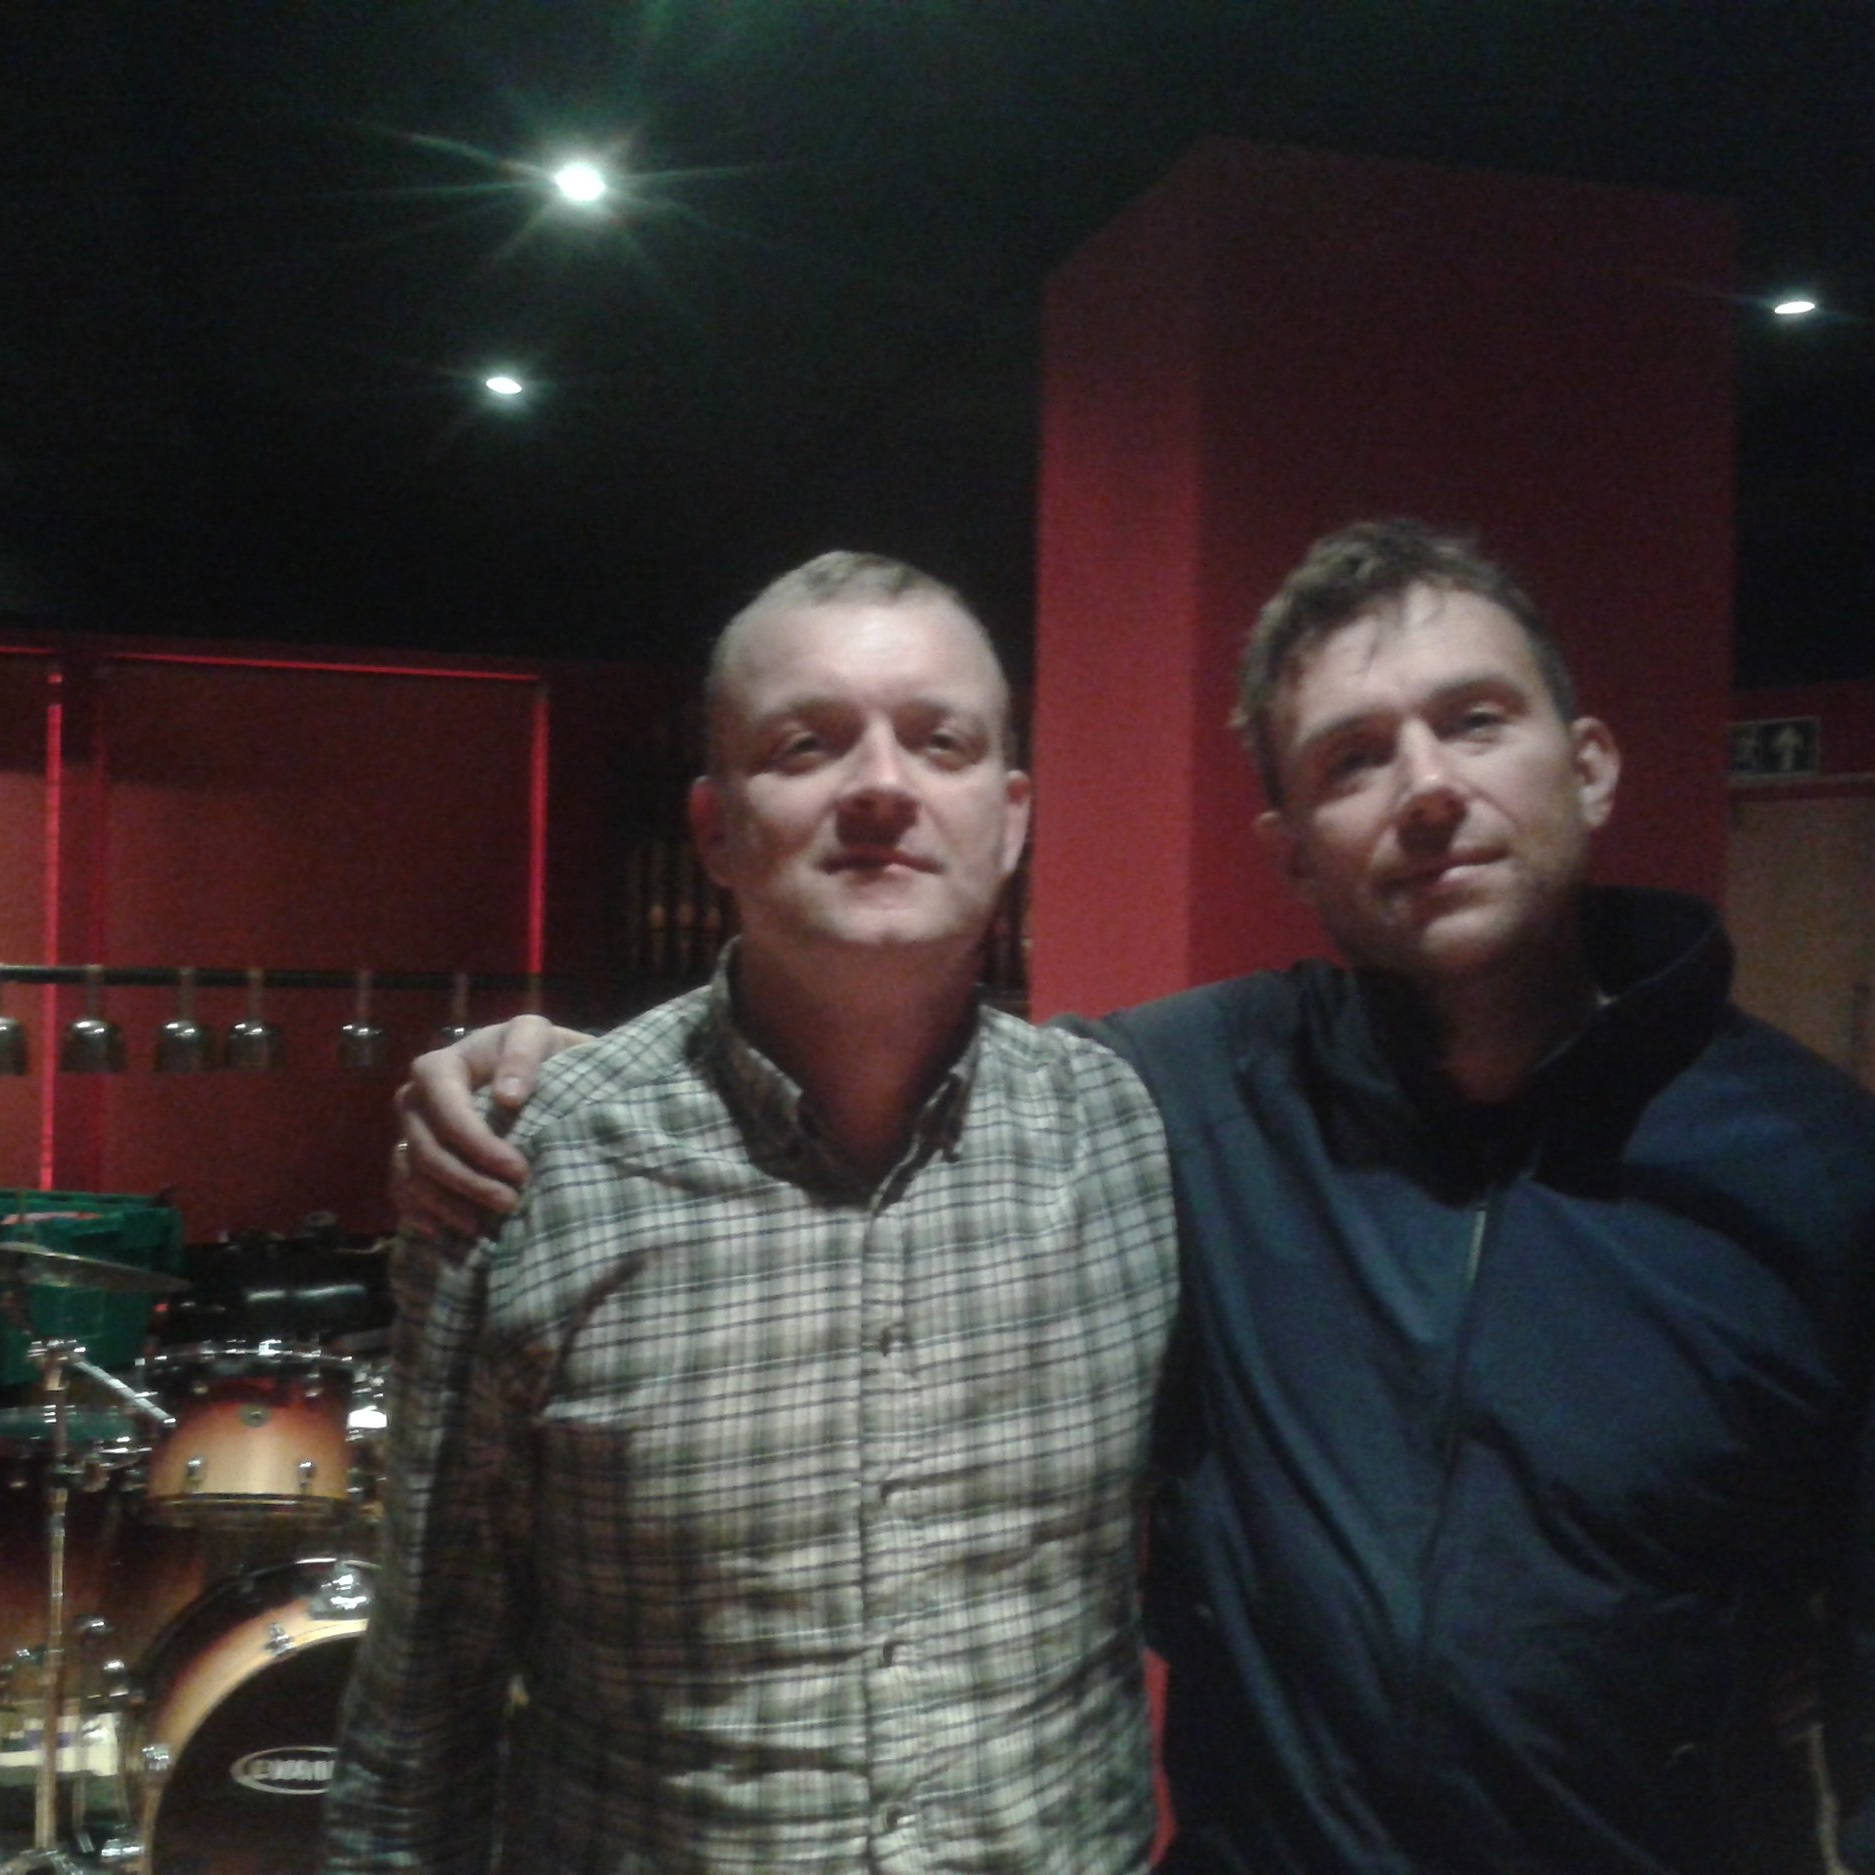 Henrik Tuxen & Damon Albarn, London 2014.